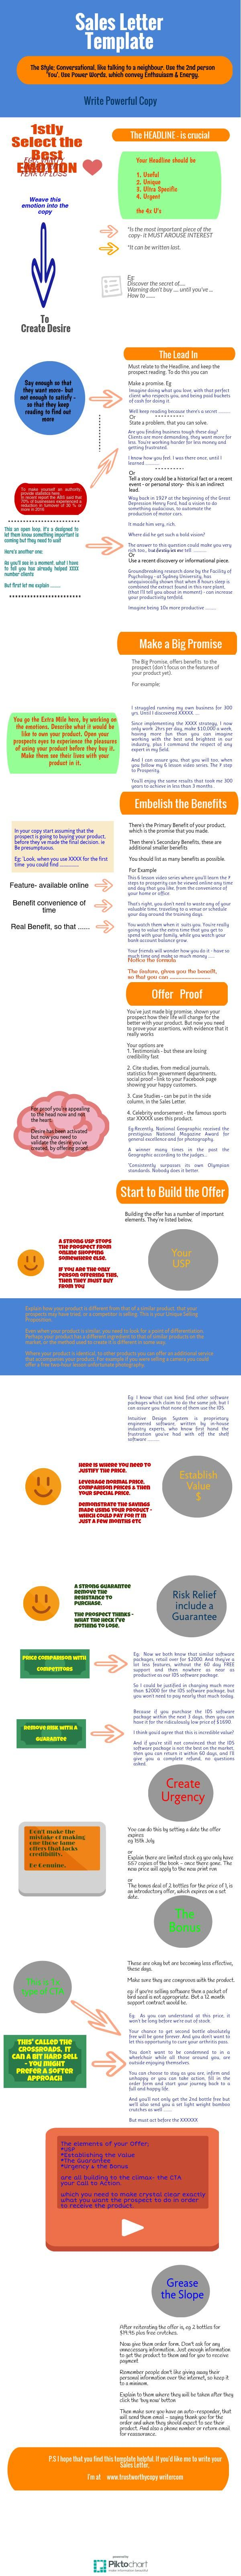 Sales Letter Template Piktochart Infographic Sales Page Sales